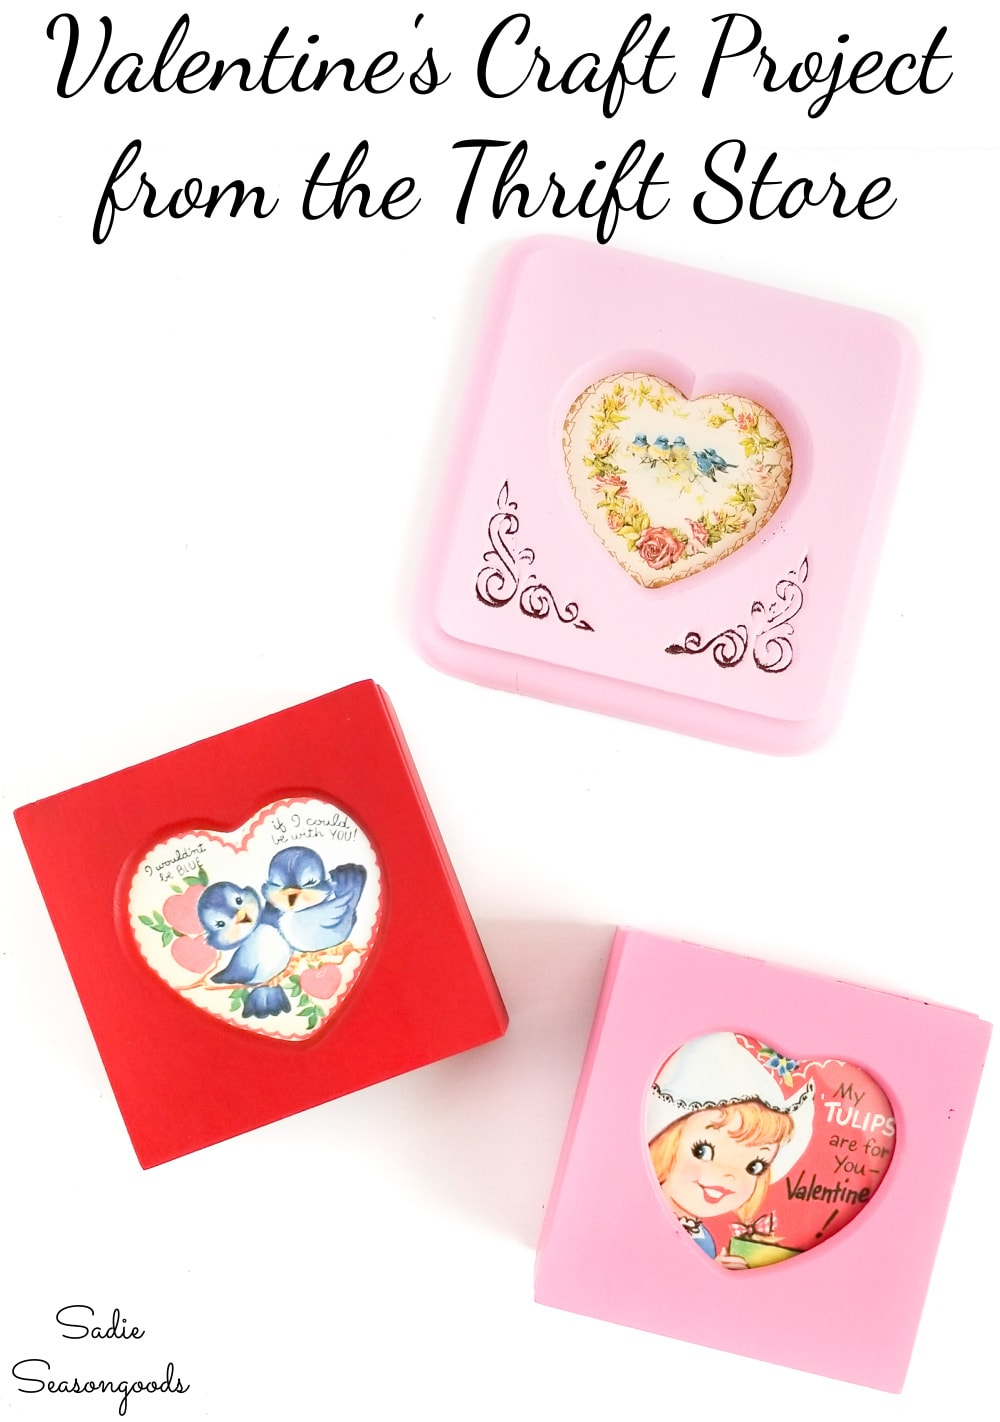 Heart shaped trinket boxes for Valentine's Day